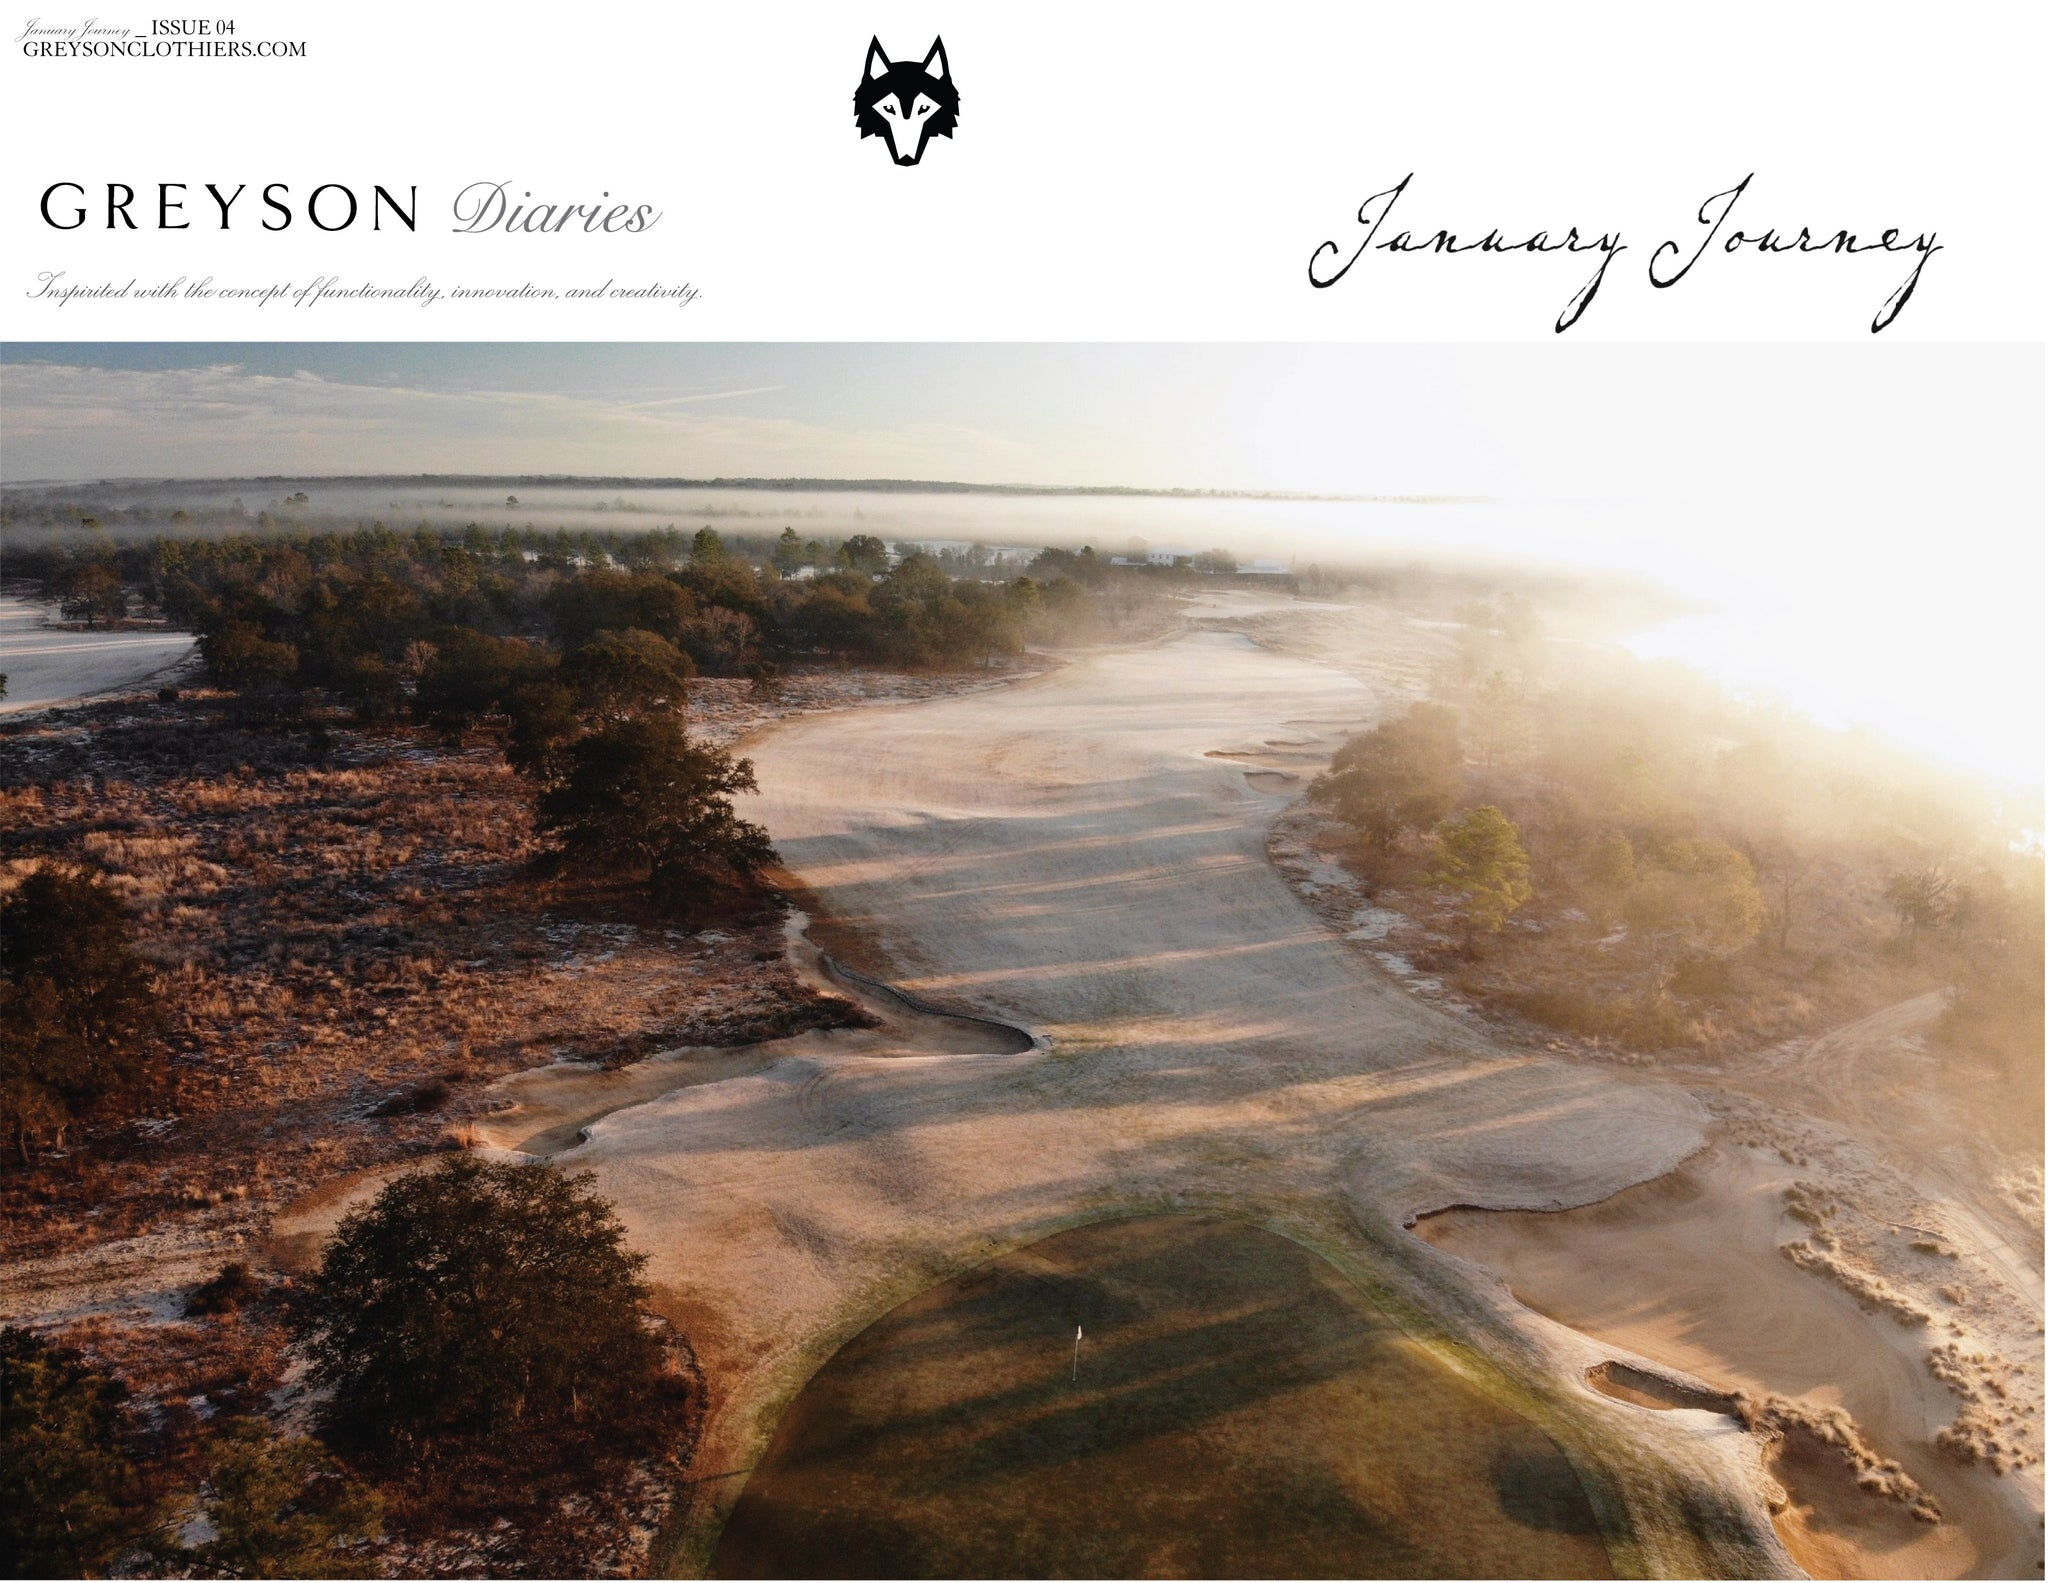 January-journey-mailer-greyson-clothiers